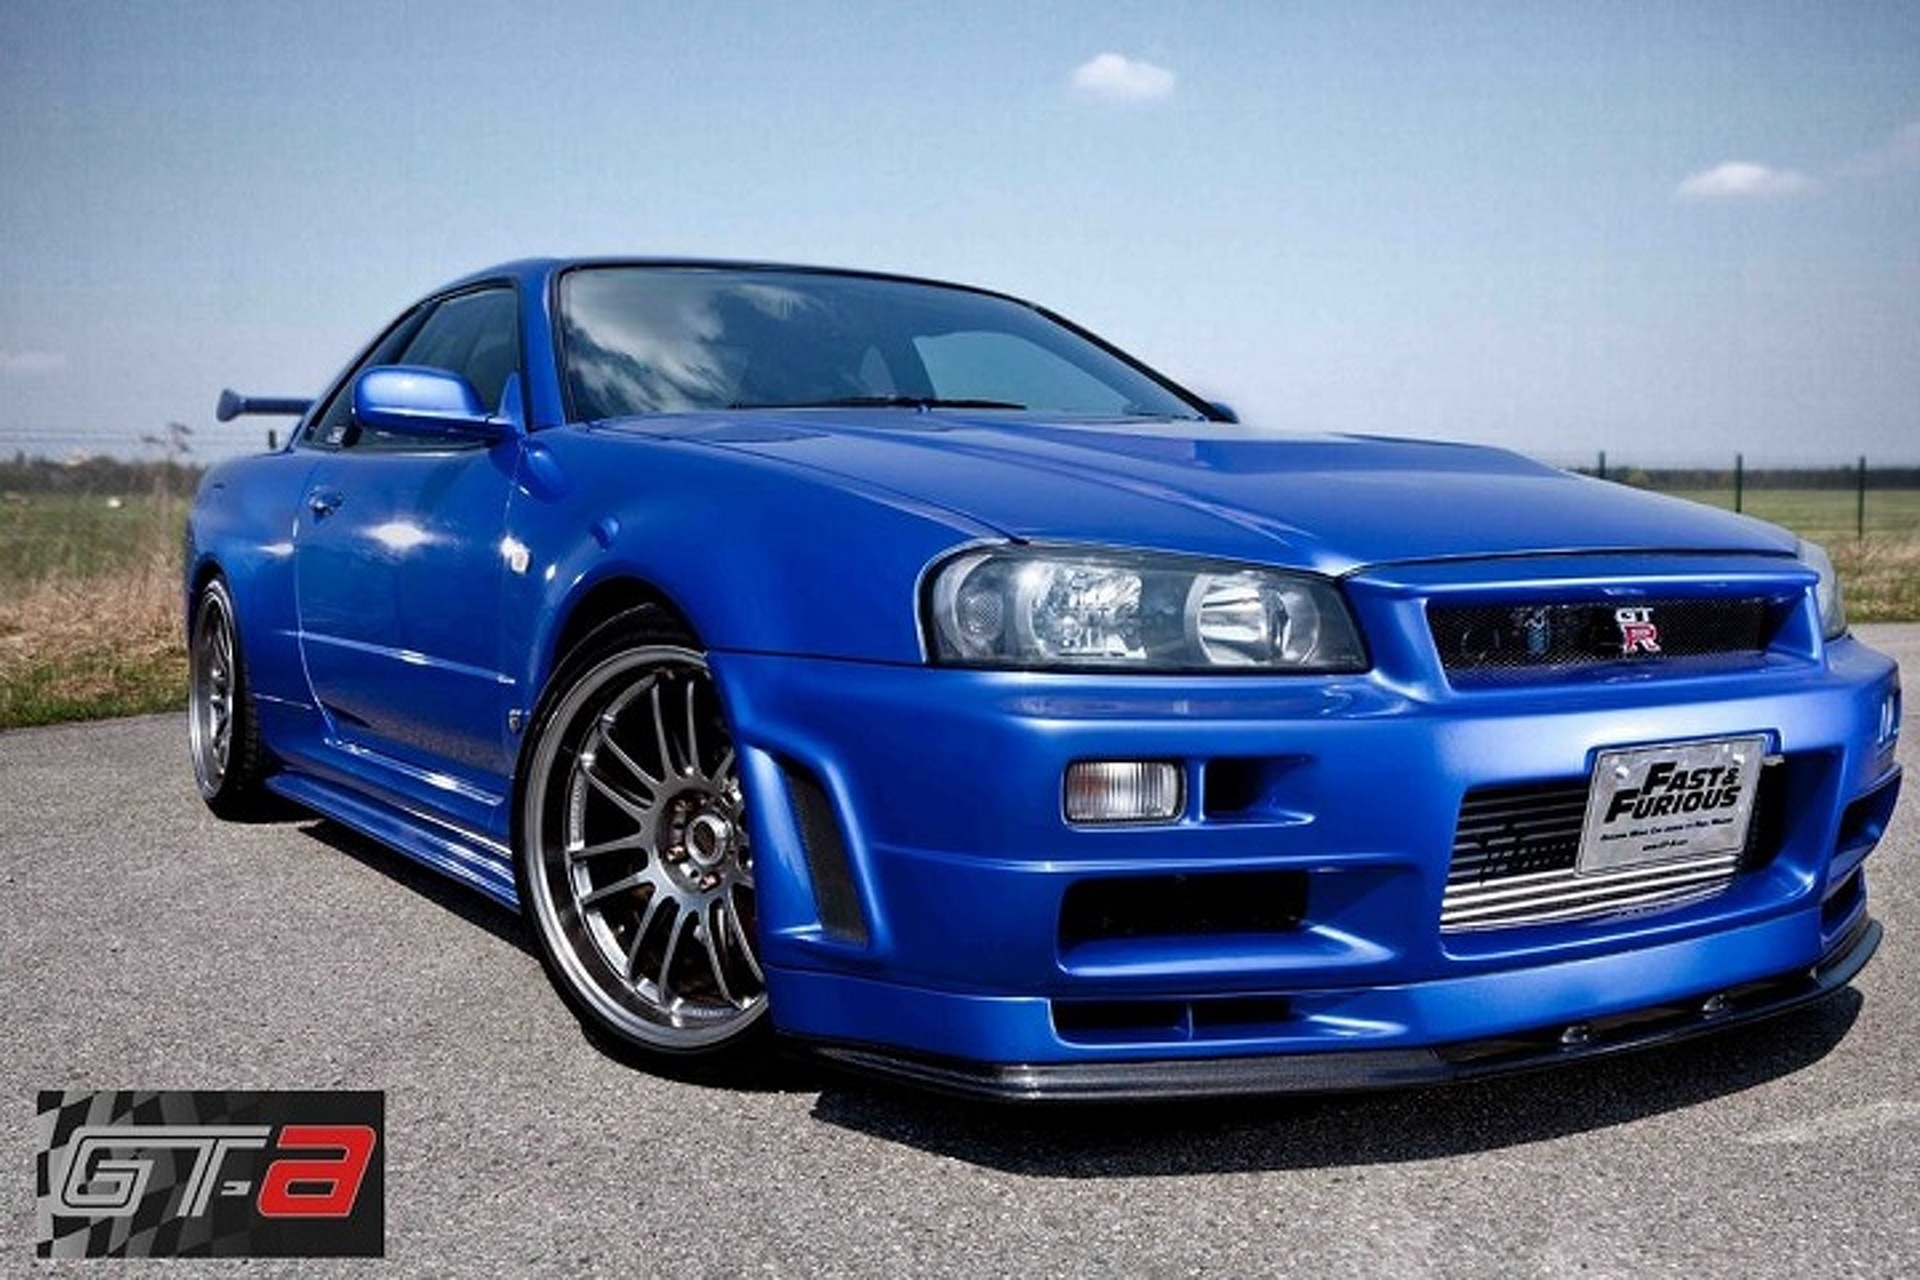 Paul Walker S Fast And Furious 4 Nissan Skyline Gt R Is For Sale